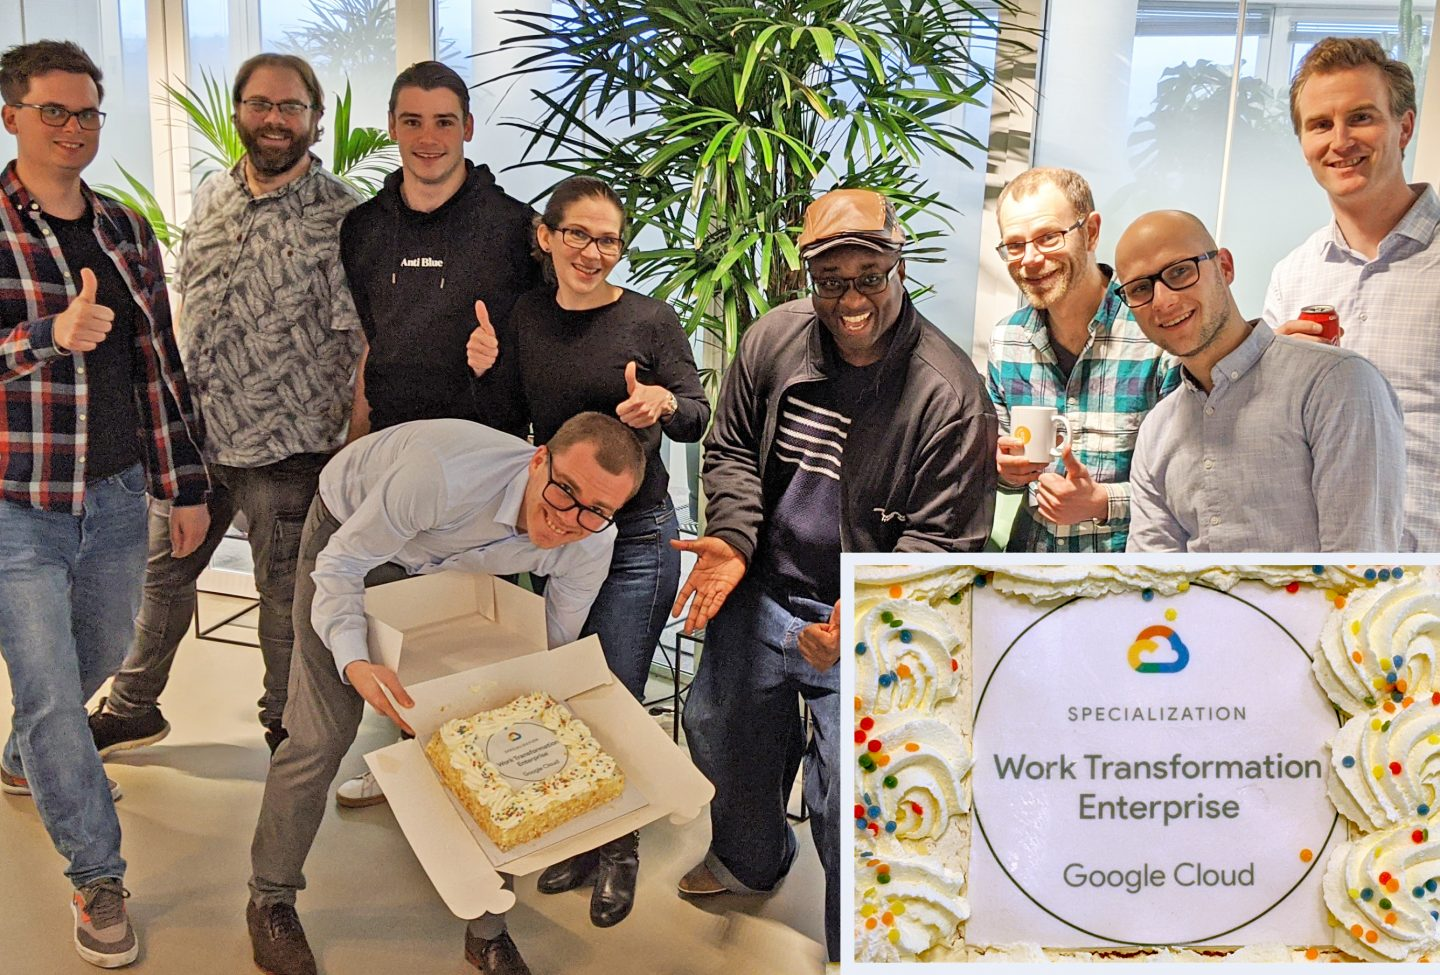 NextNovate achieves 'Work Transformation Enterprise' Google specialization